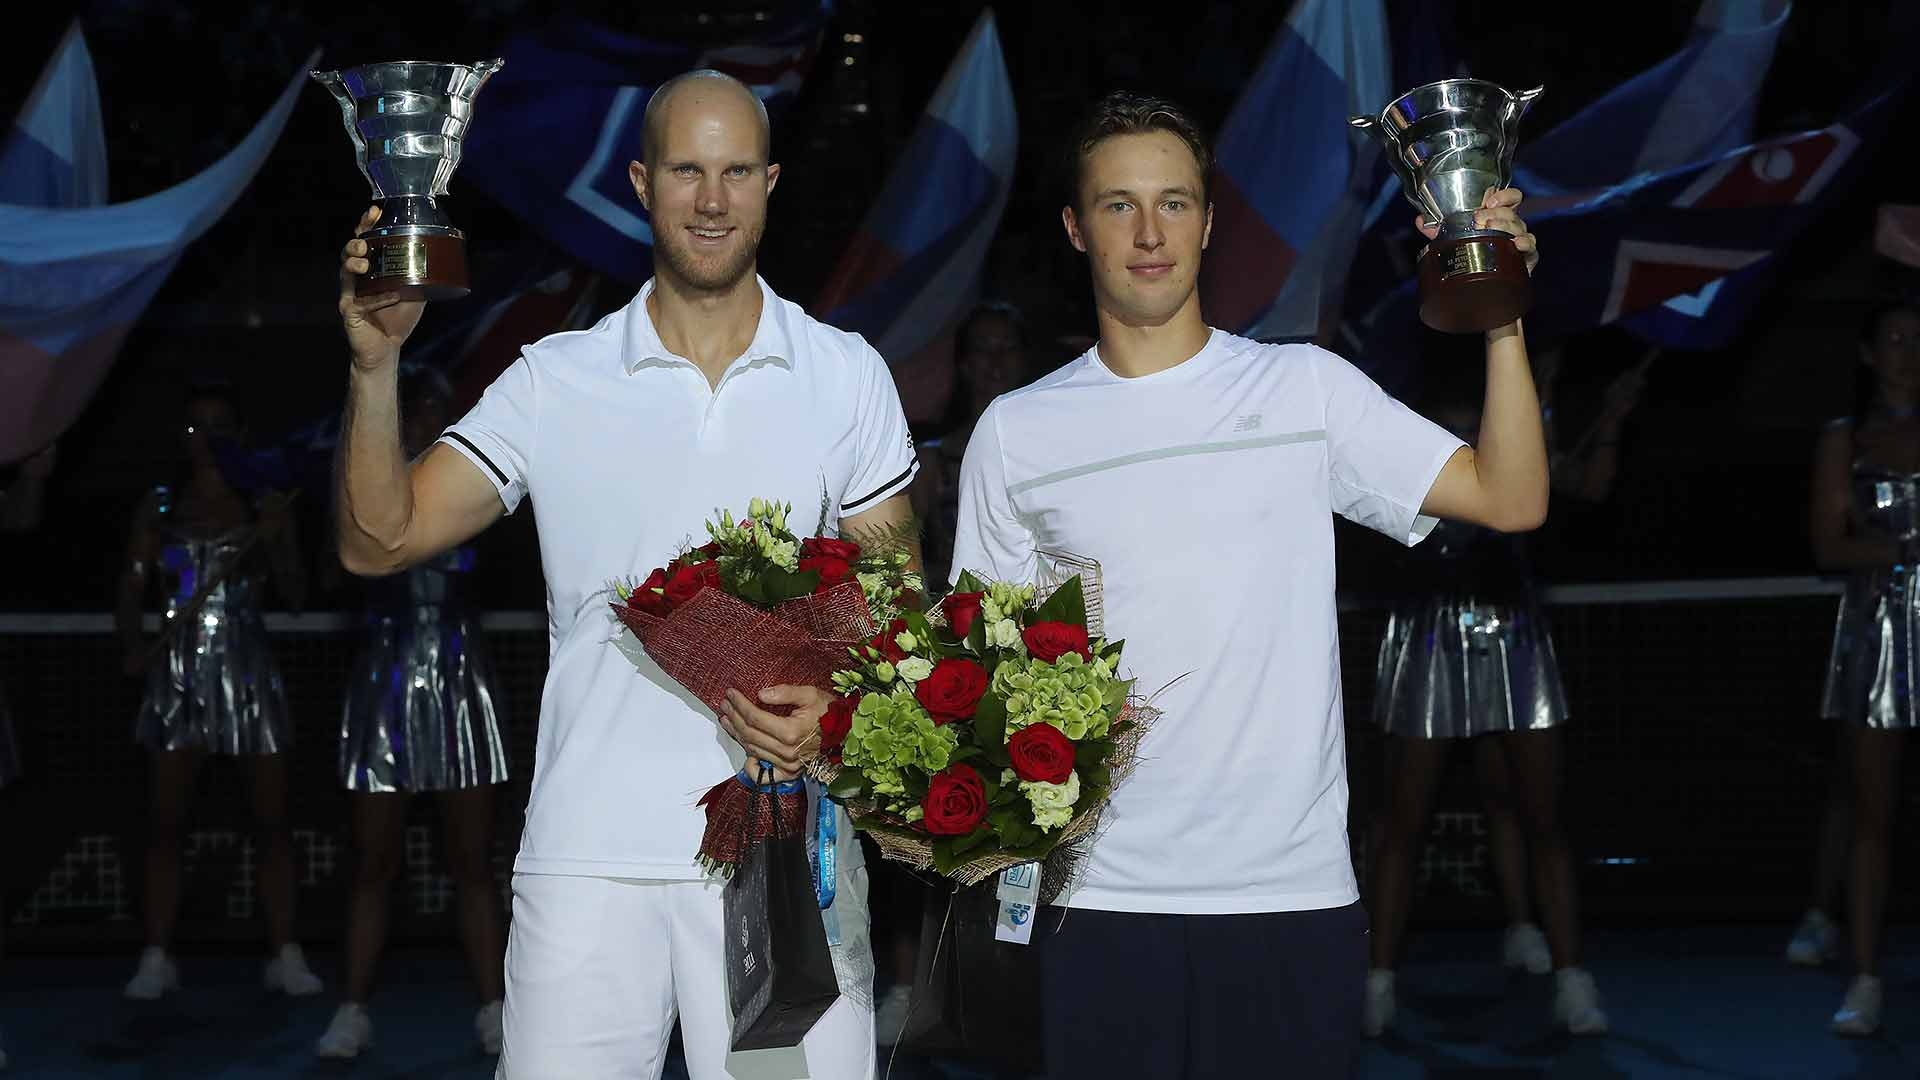 Inglot and Kontinen